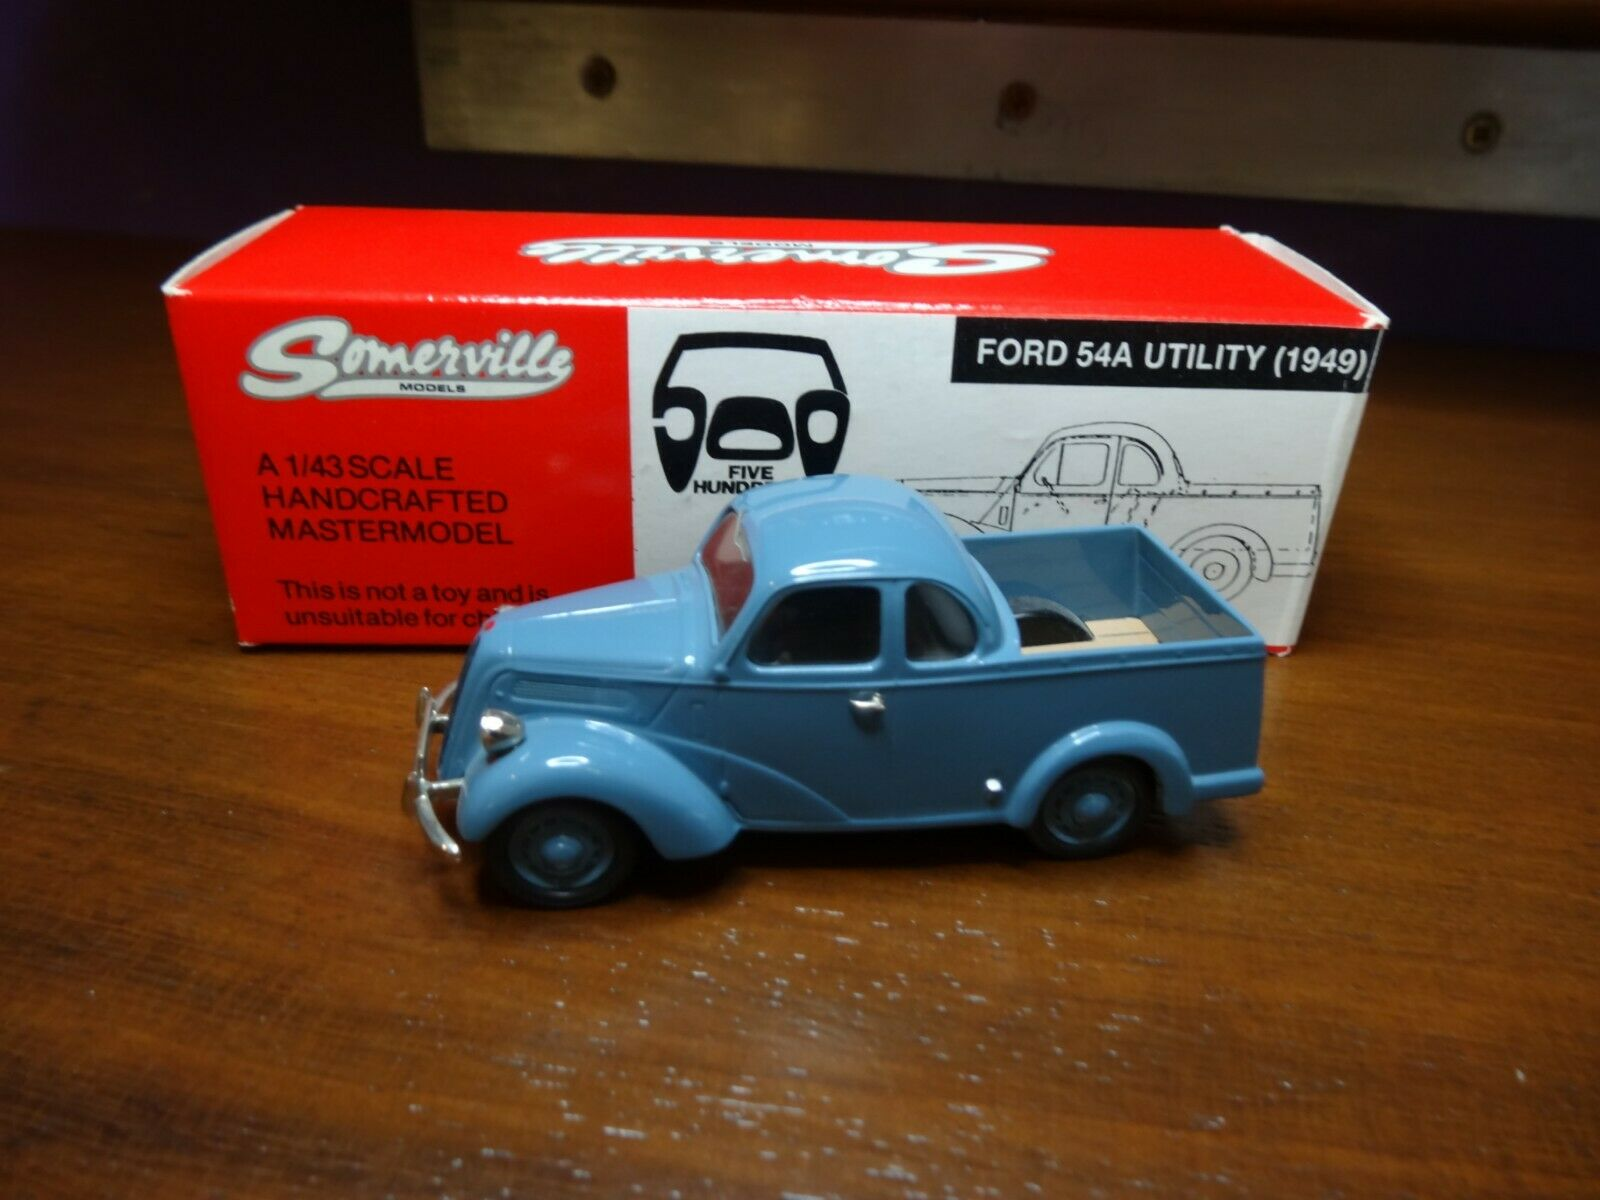 SOMERVILLE MODELS 501 FORD 54A UTILITY 1949 blueE BOXED 161 500